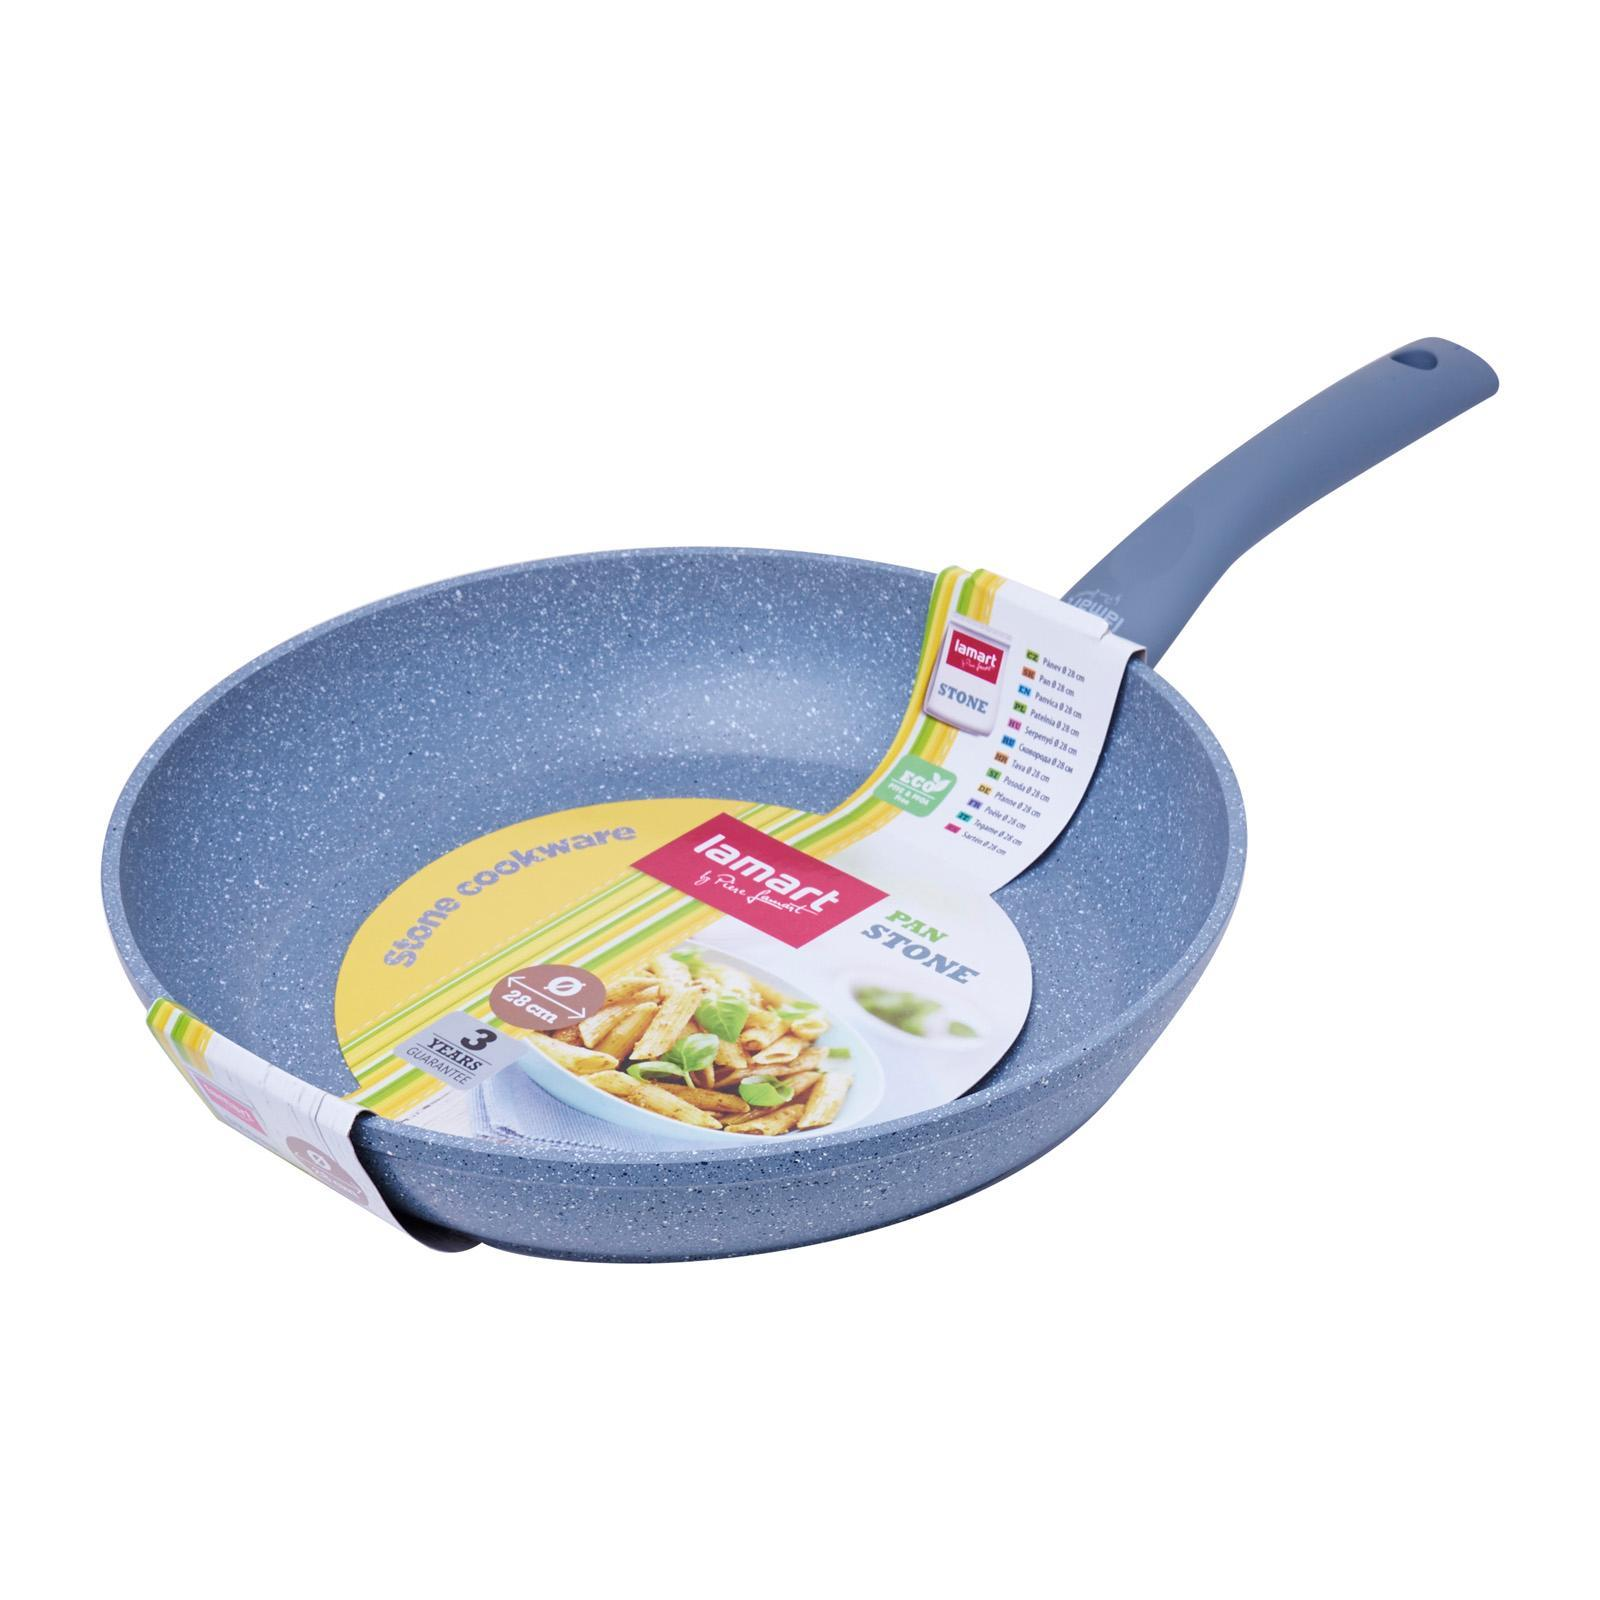 Lamart Induction Ready Marble Stone Fry Pan 28X5.3Cm